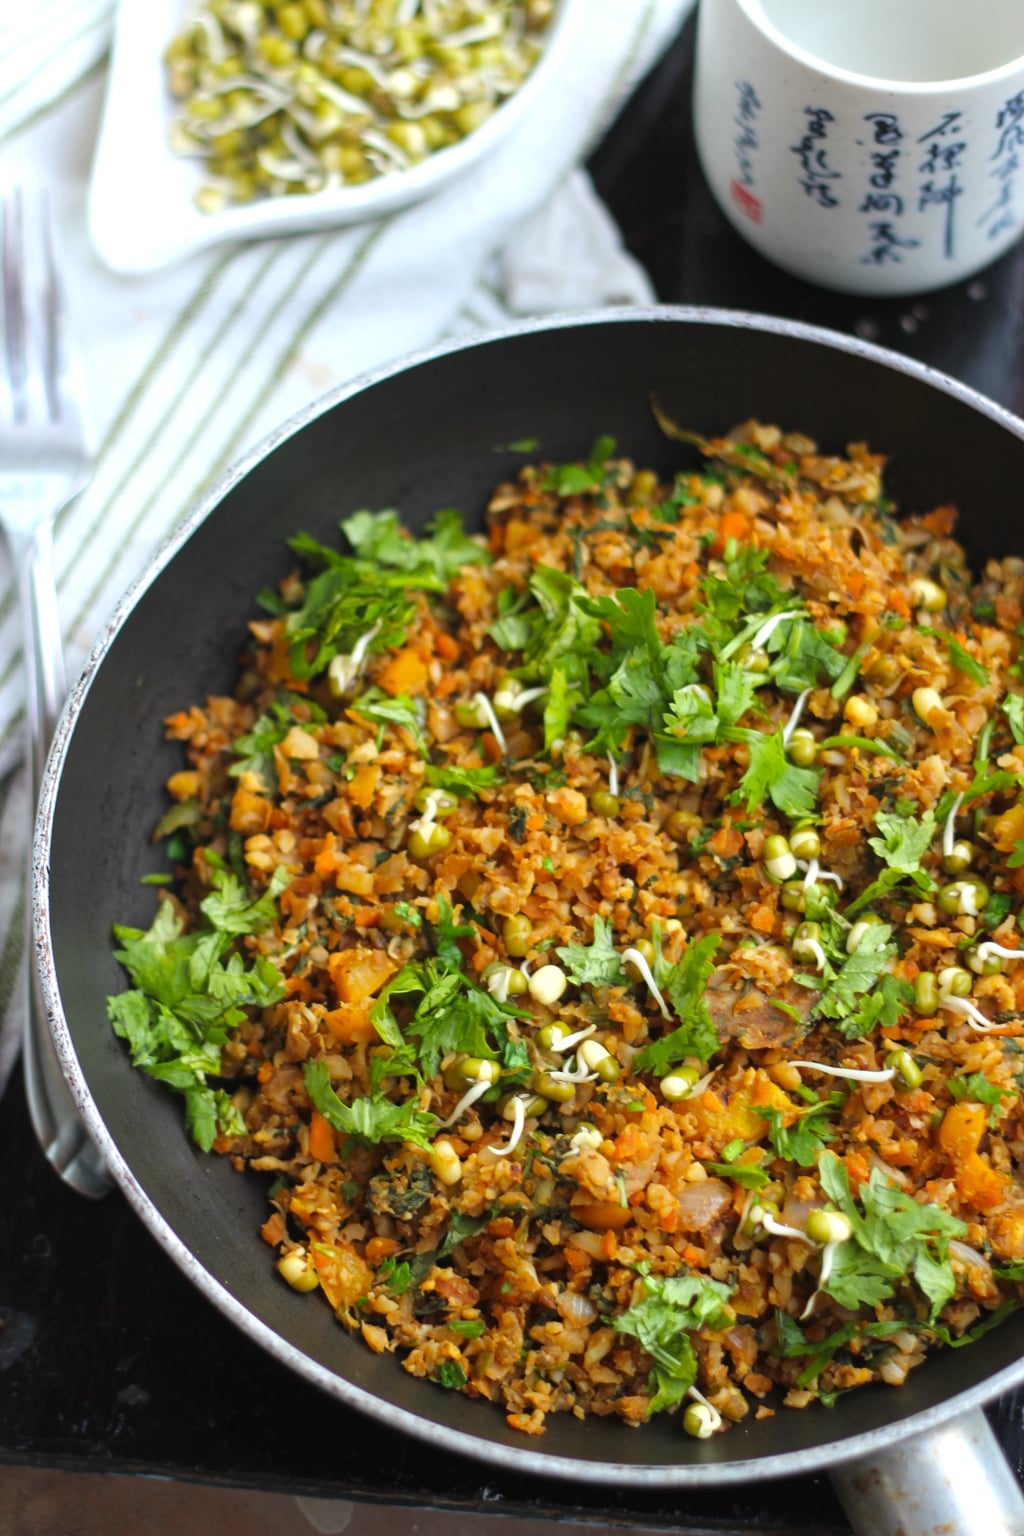 Trusted Results with Fried rice recipe minute rice. Stir-Fried Rice - All Recipes. Fried rice in 15 minutes! Cook Minute(R) Rice with chicken broth, stir-fry vegetables, soy sauce and egg.